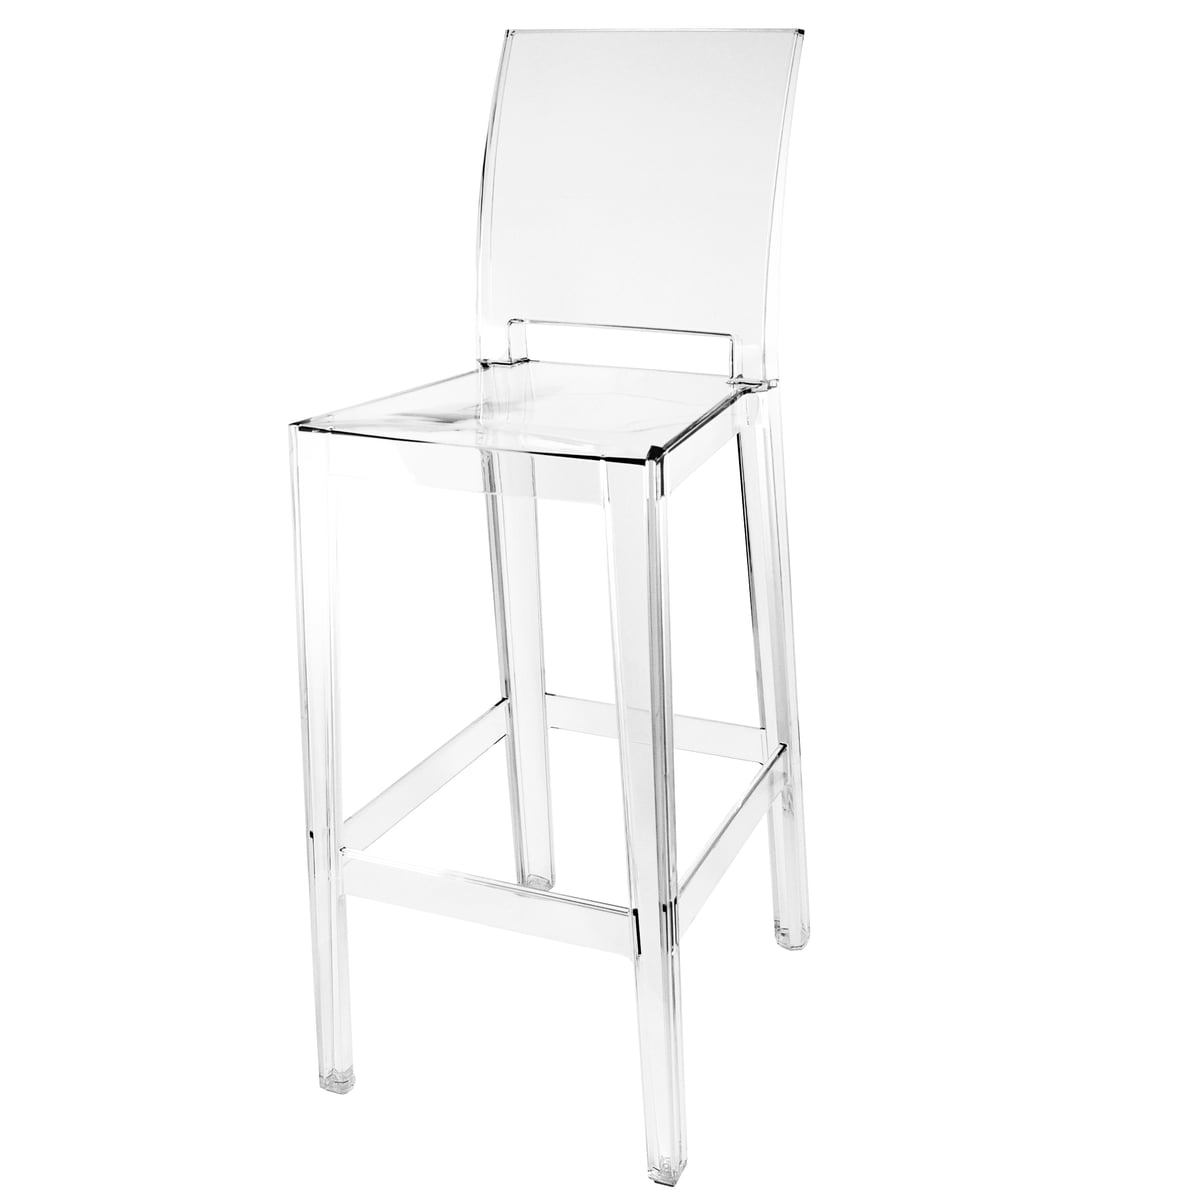 Tabouret De Bar Kartell.Kartell Tabouret De Bar One More Please H 110 Cm Carre Transparent